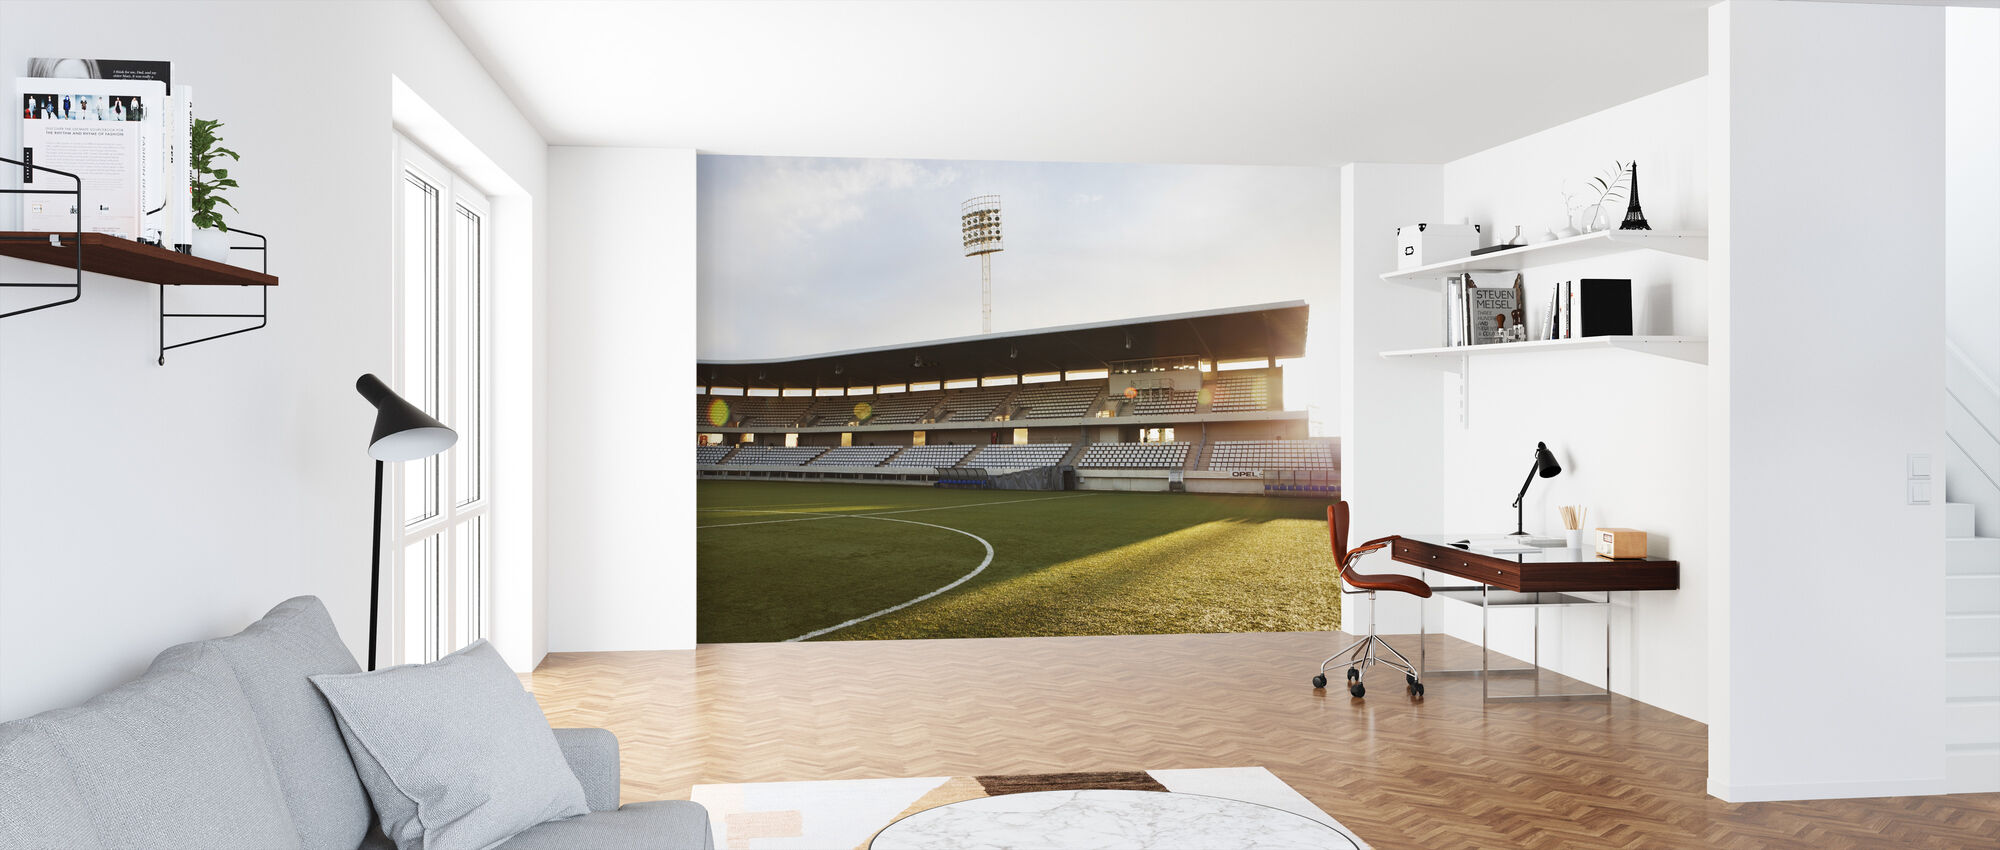 Soccer Field in Barcelona - Wallpaper - Office